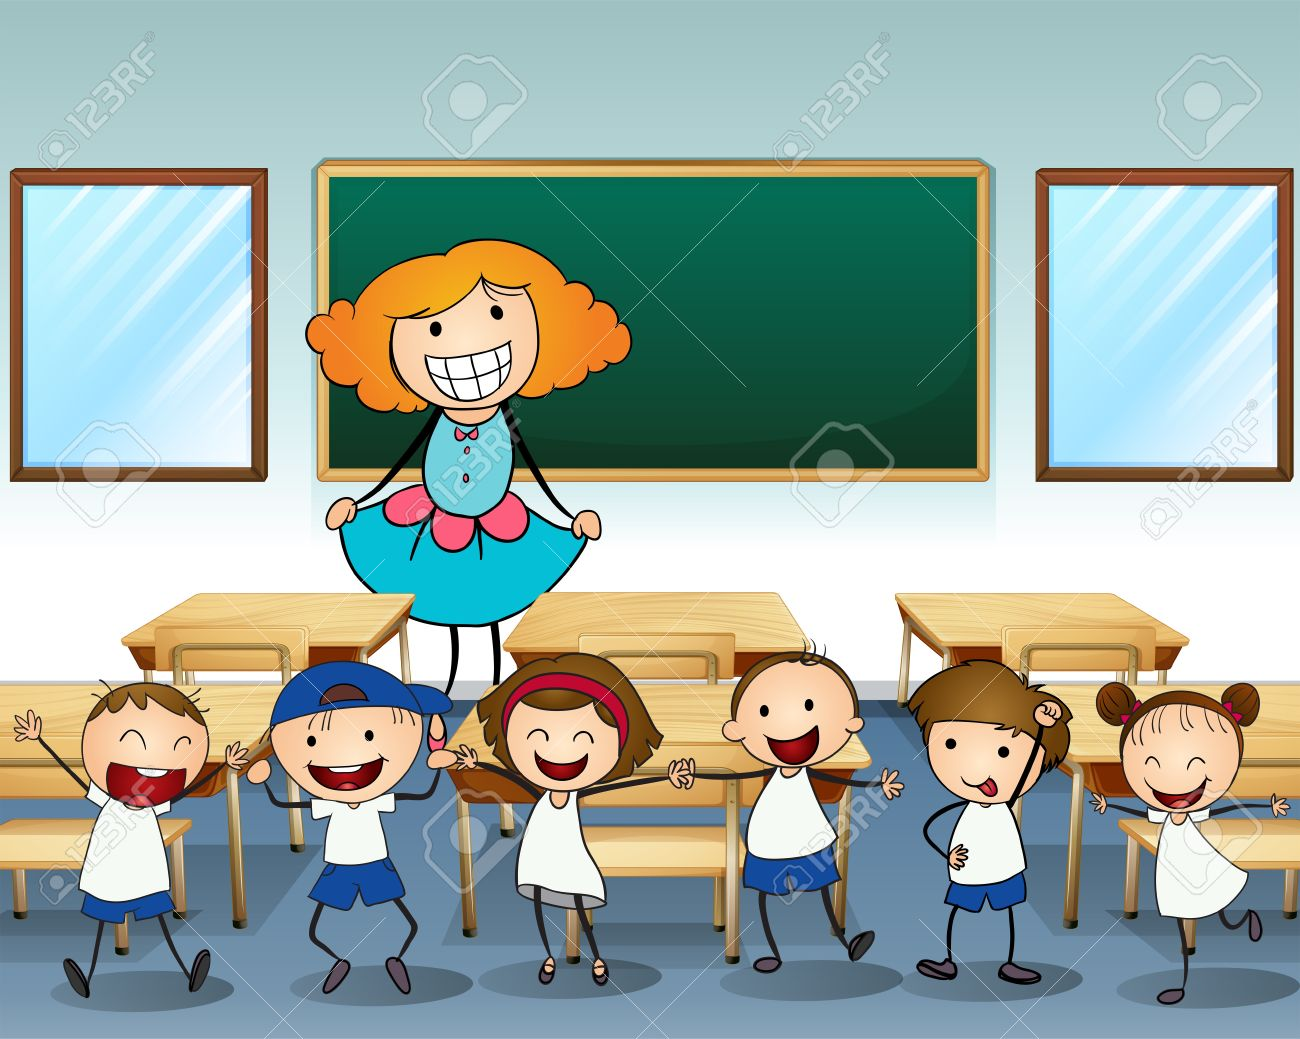 Image result for students laughing in class cartoon